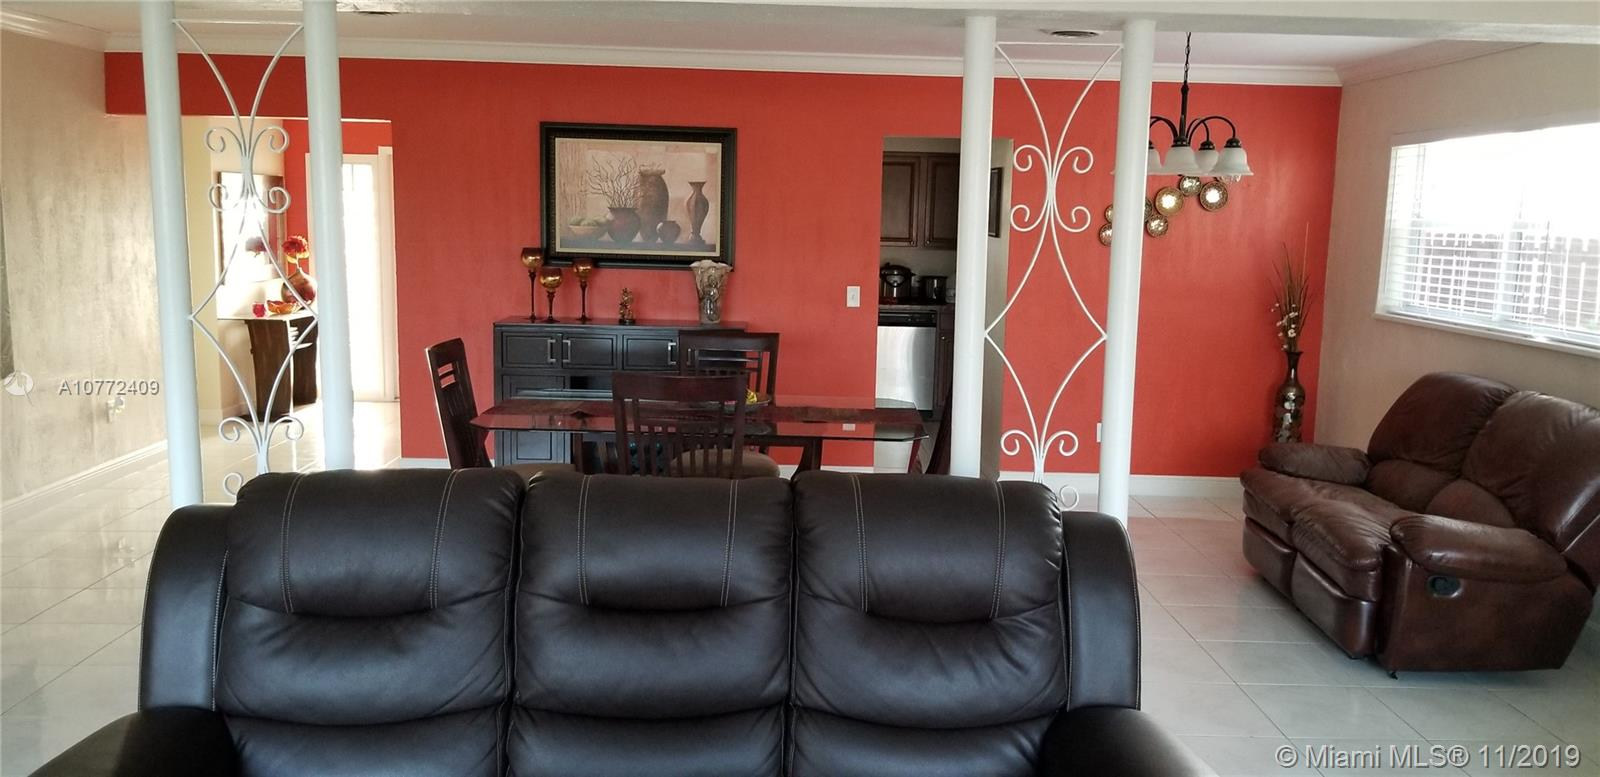 701 N 73rd Ave  For Sale A10772409, FL